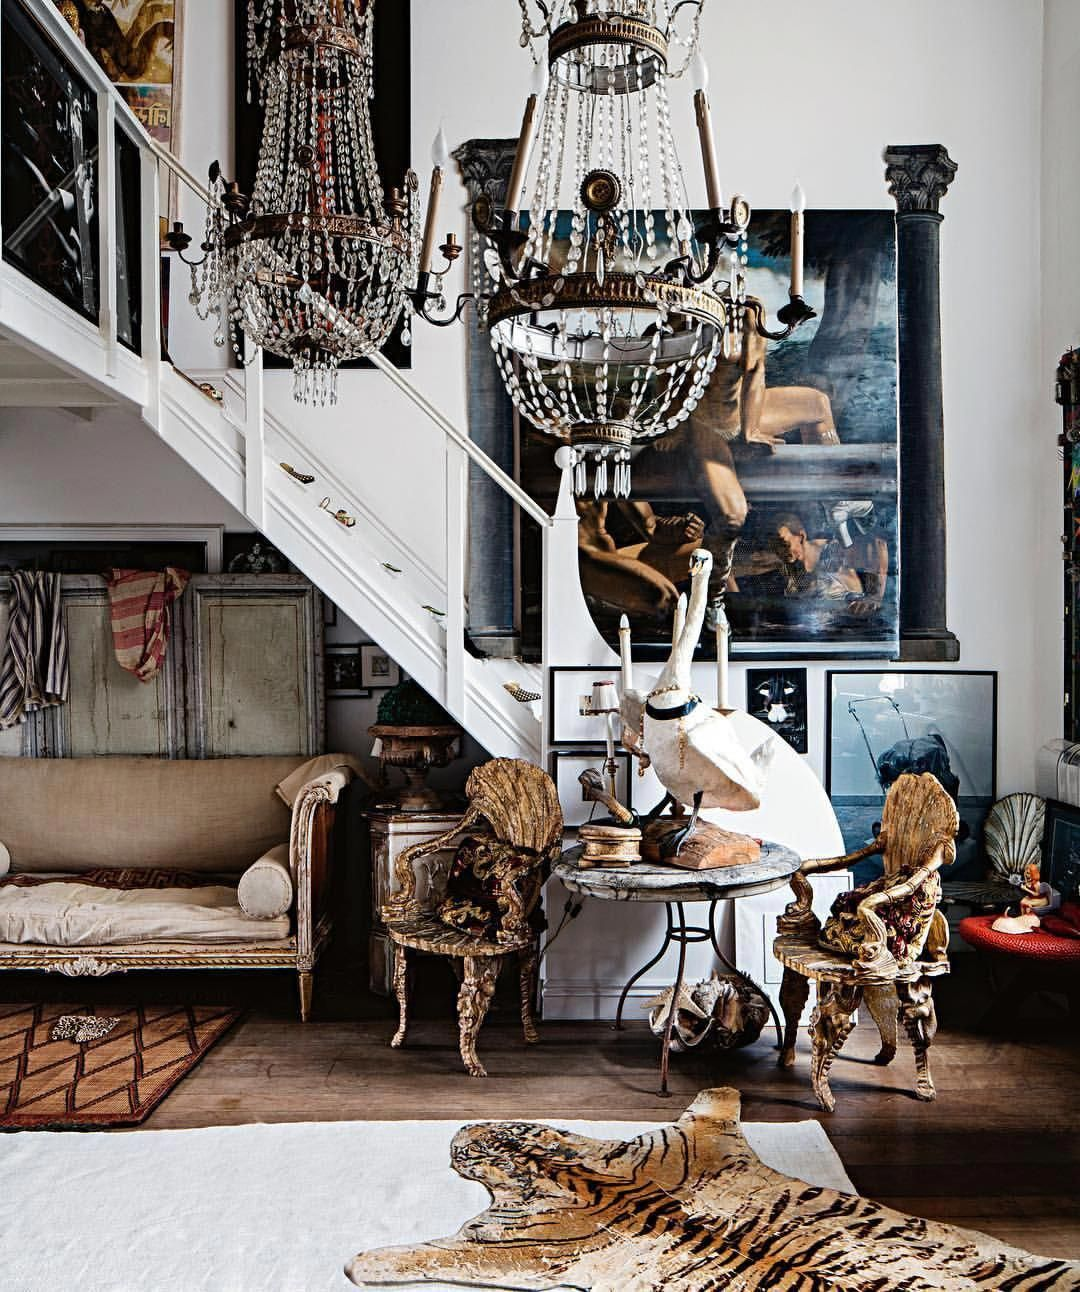 Home Decorating Tips On A Budget Discounthomedecorations With